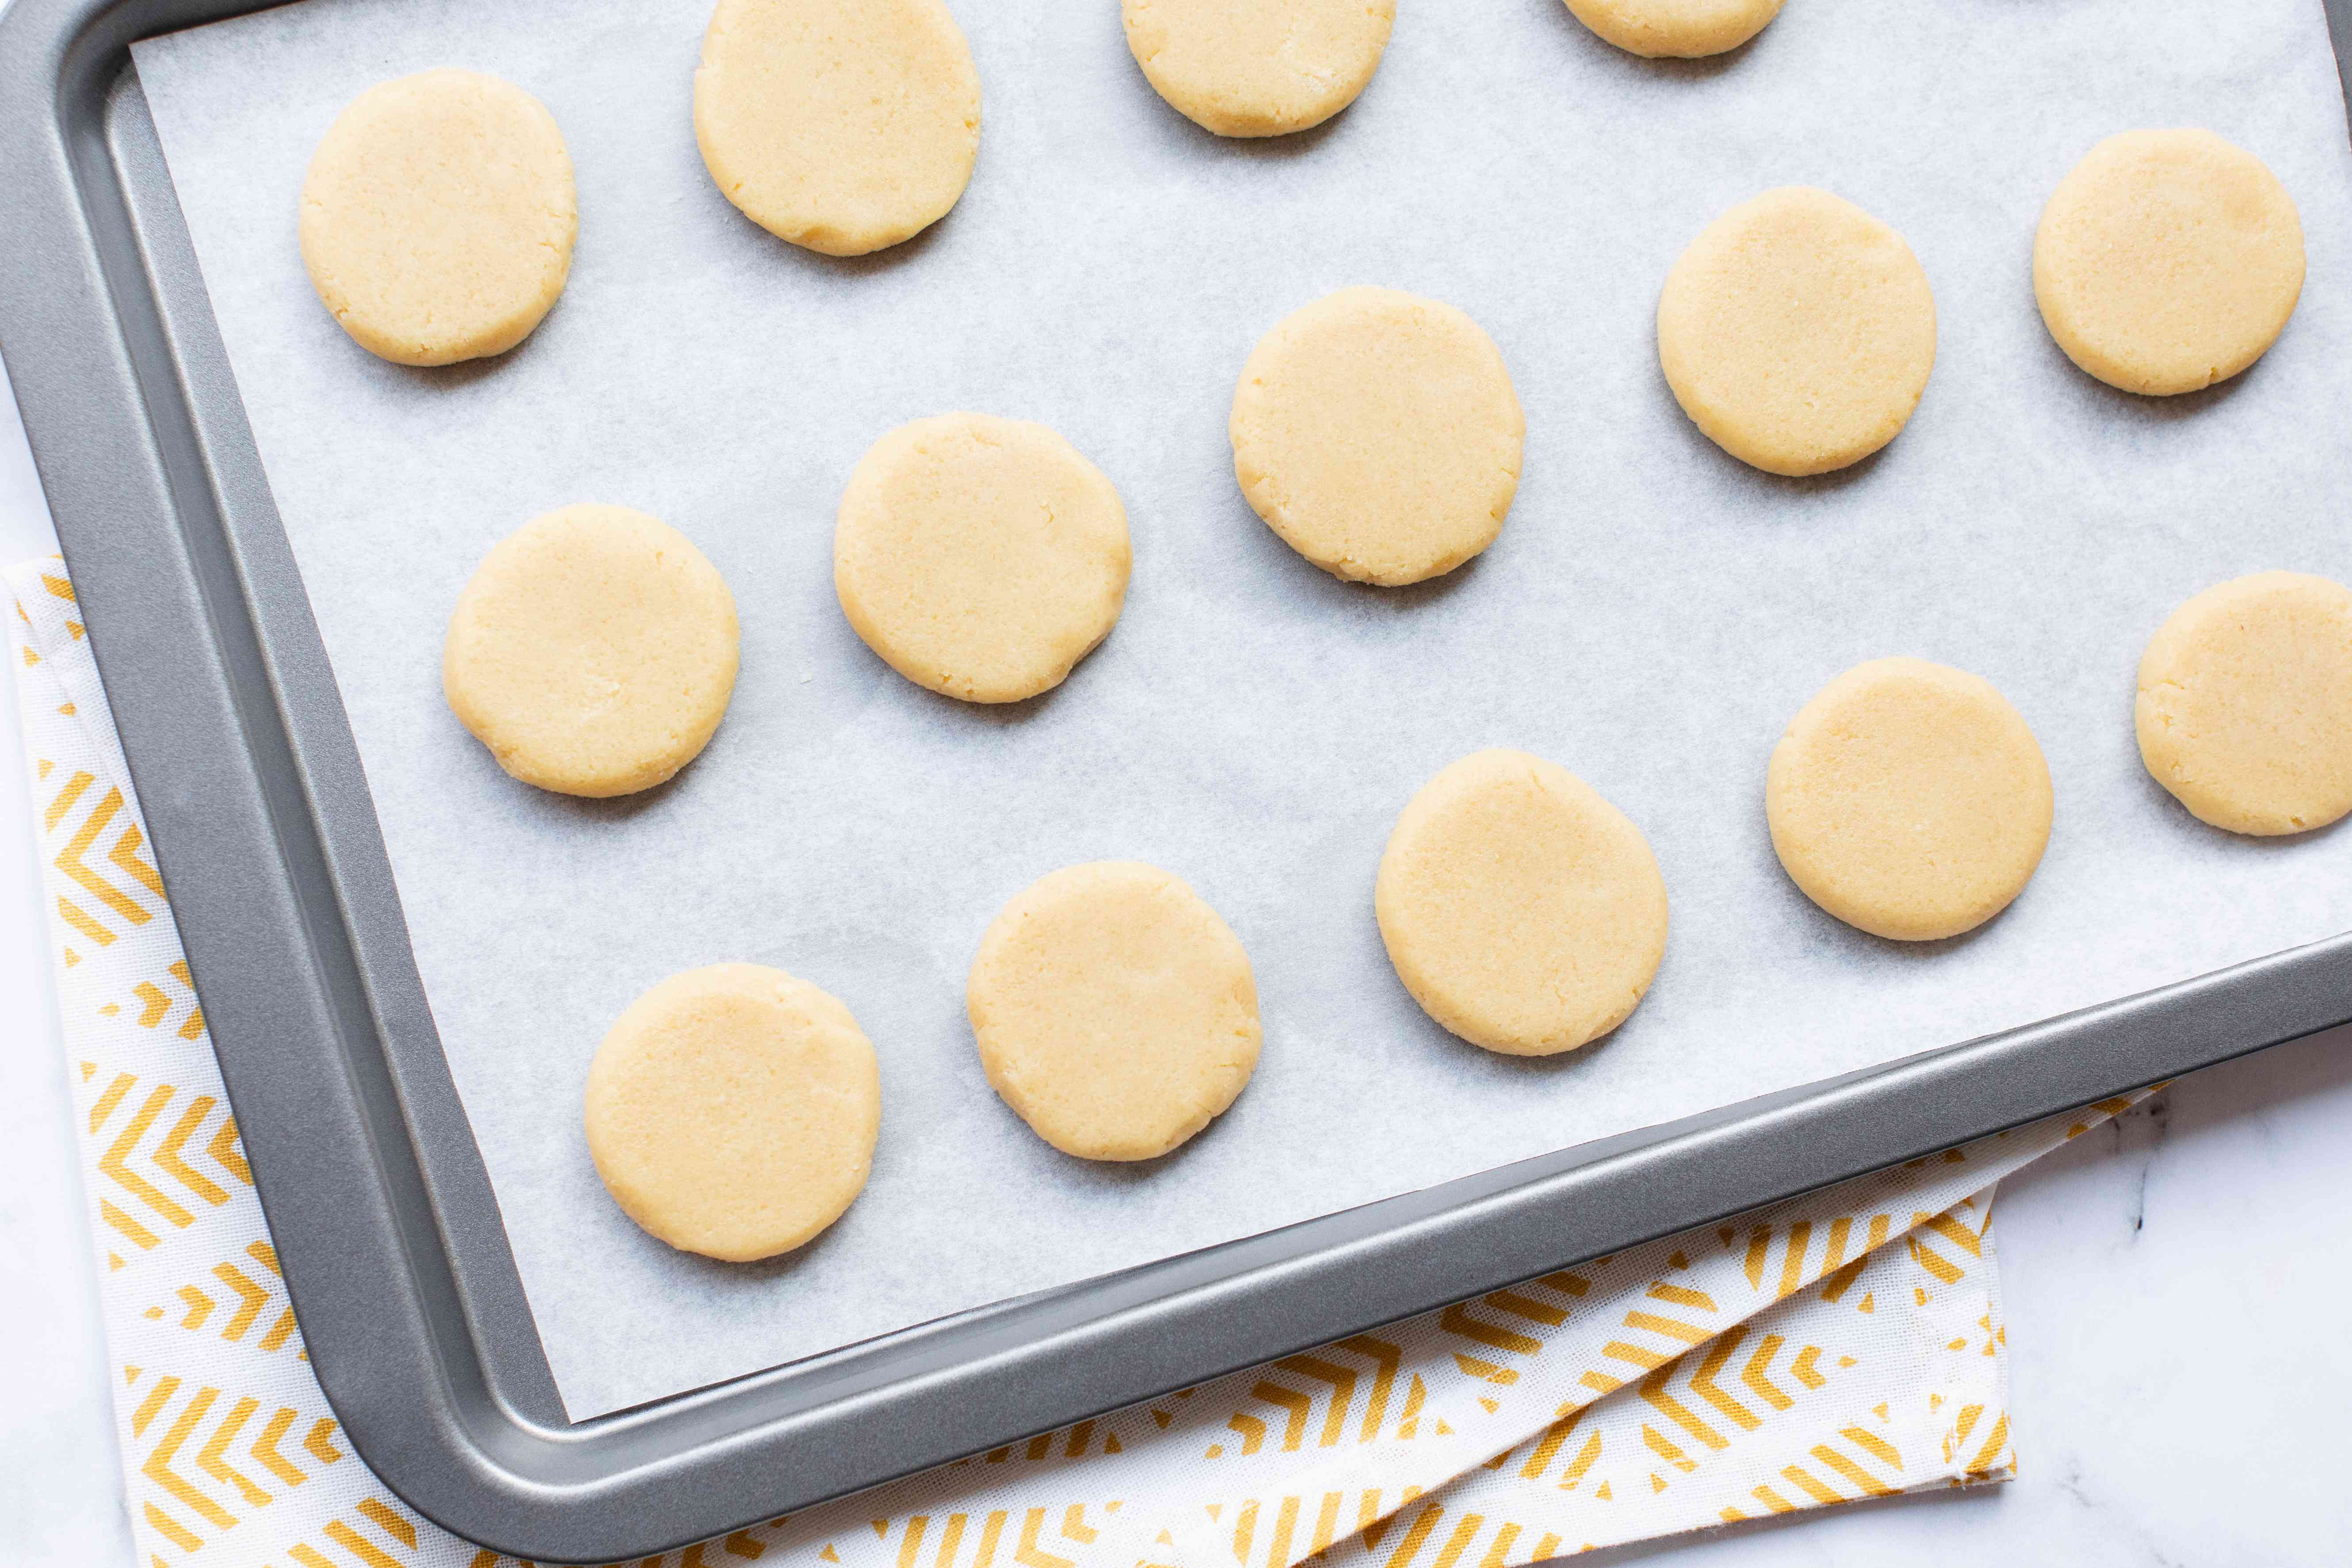 Flattened dough balls on a baking sheet for a Chinese almond cookie recipe.